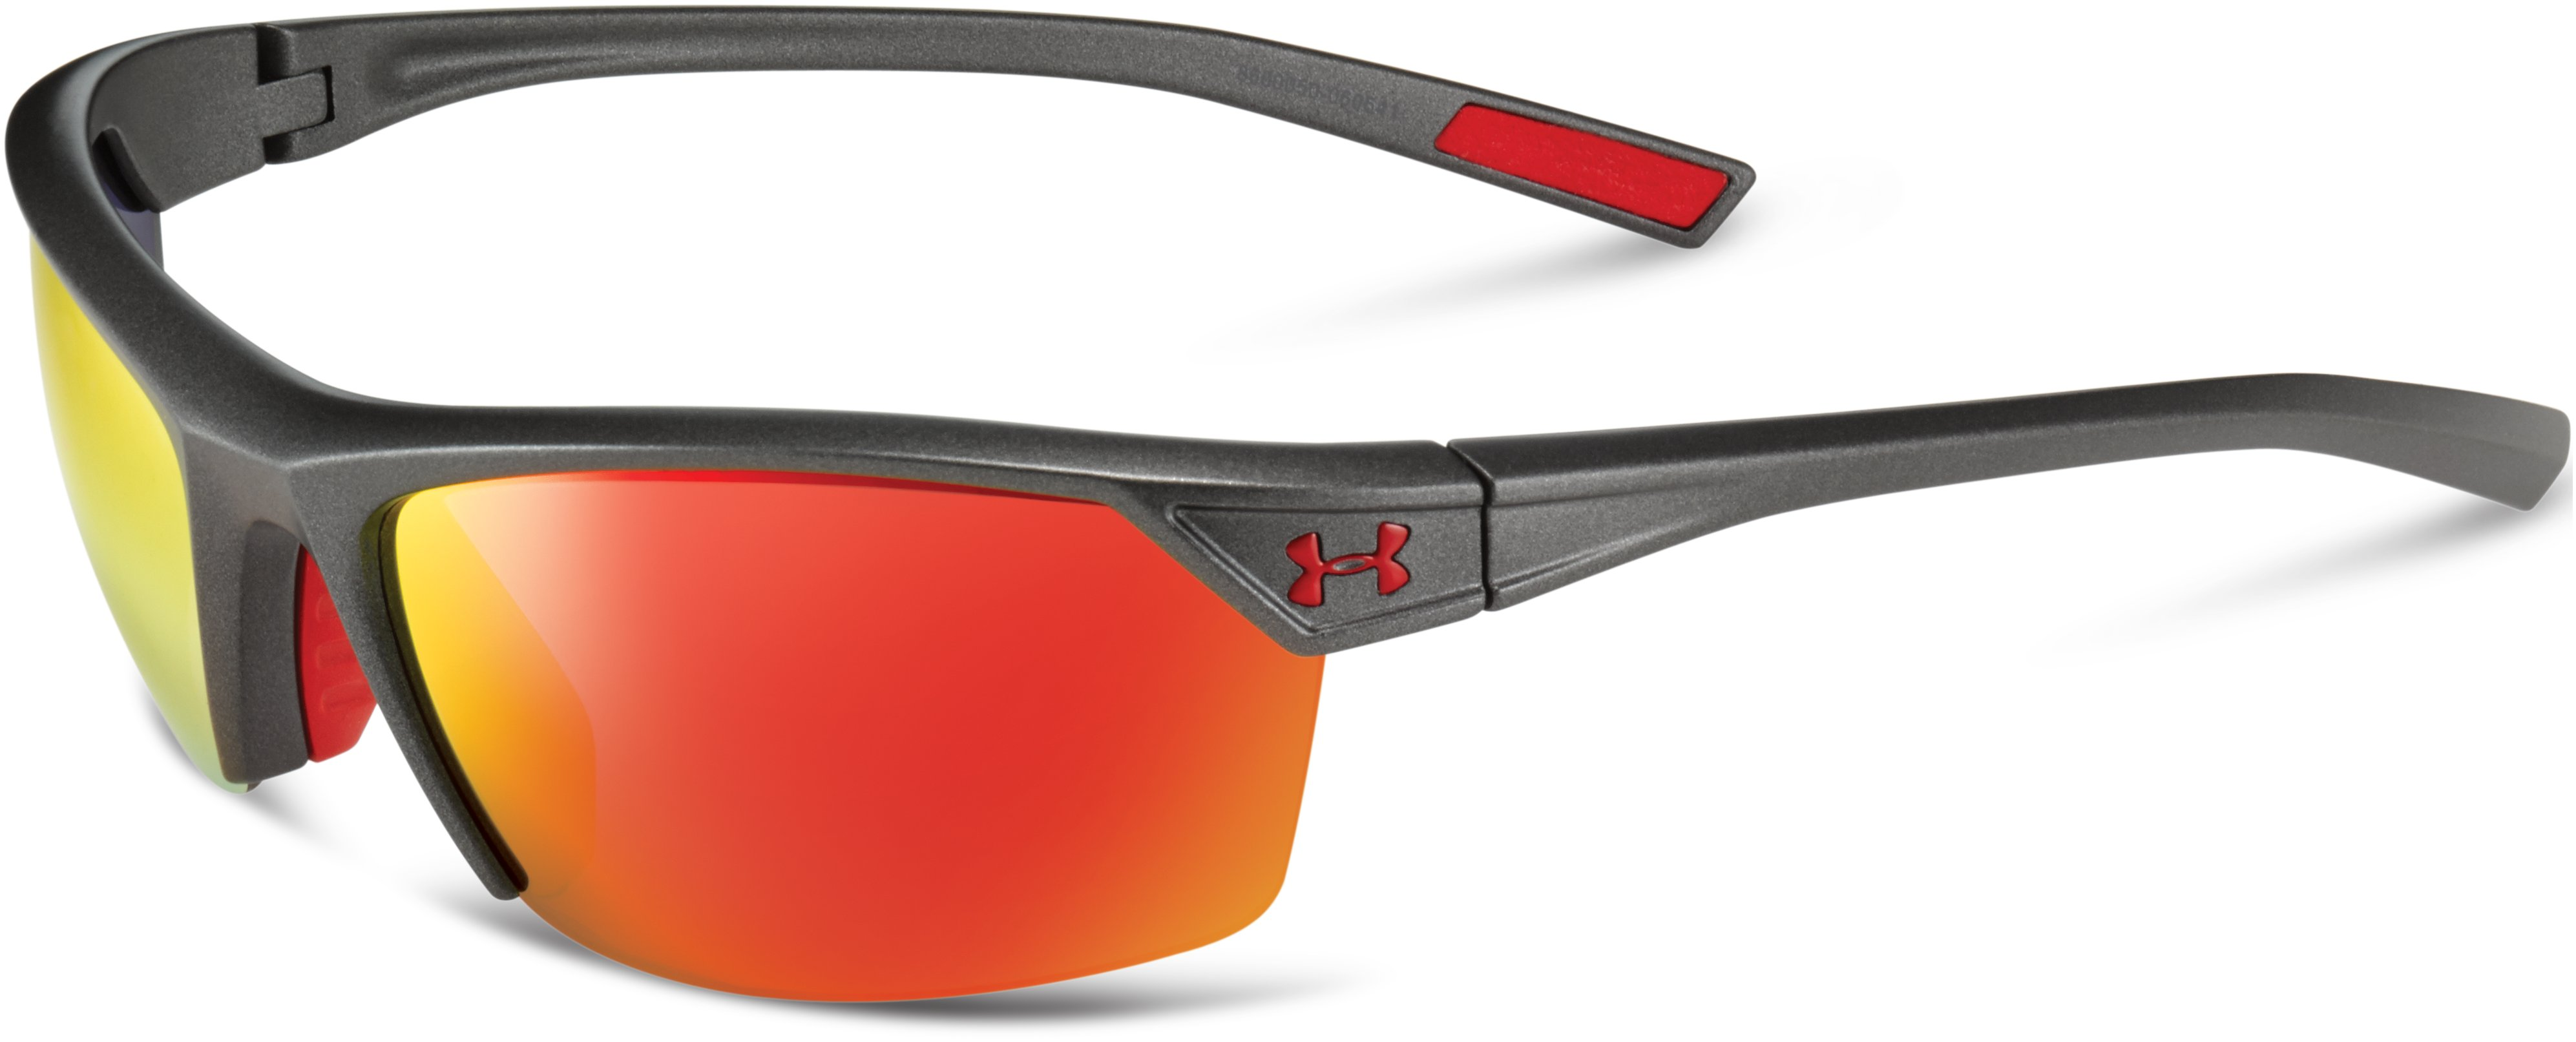 UA Zone 2.0 Sunglasses, Carbon